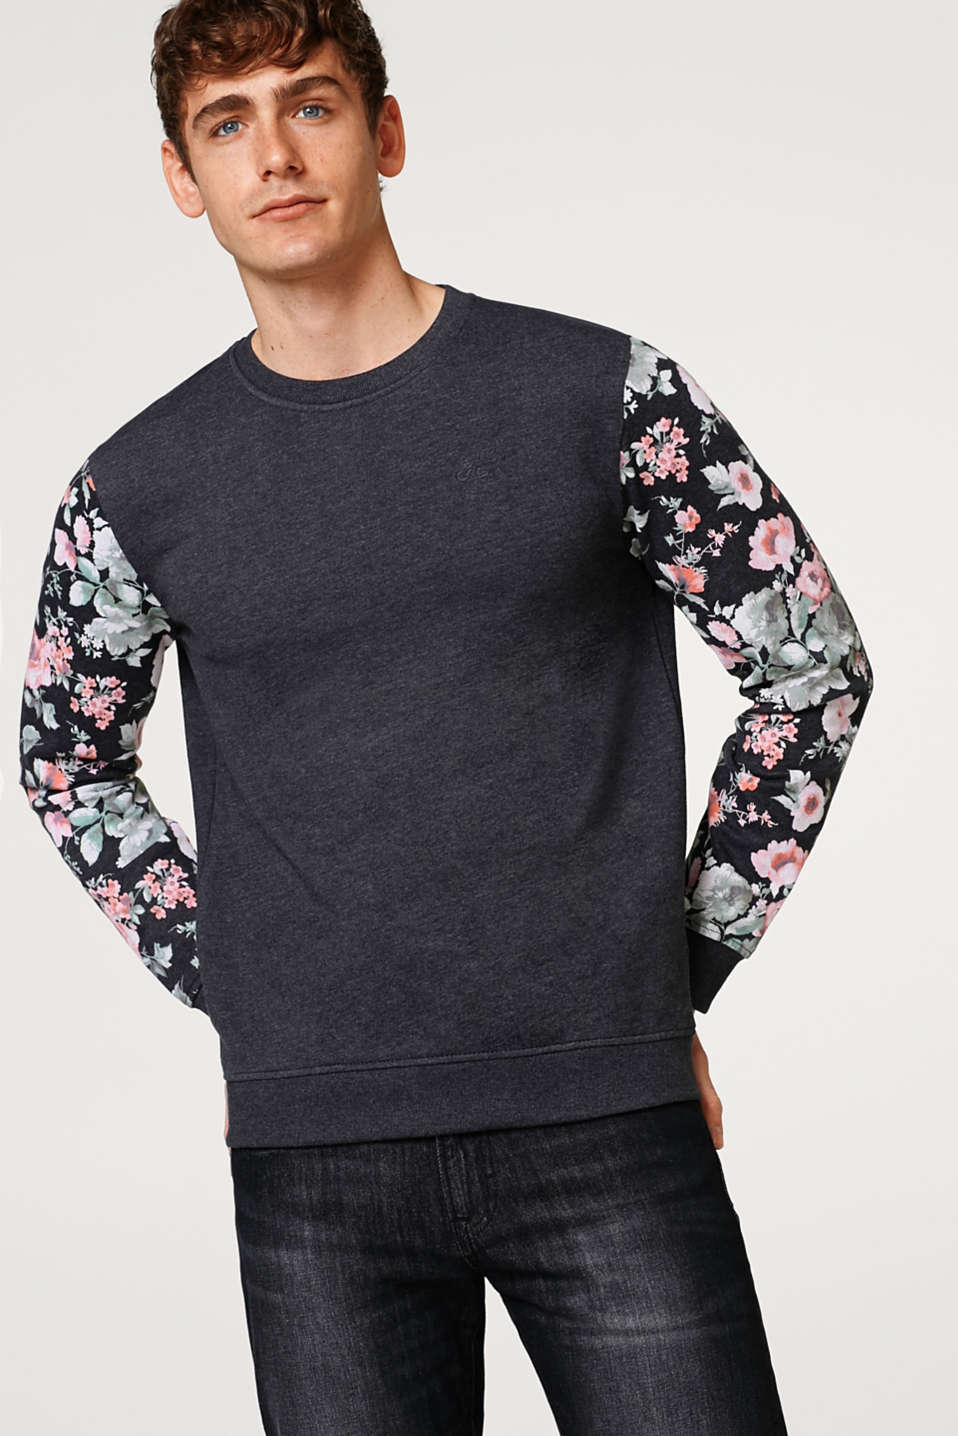 edc - Sweatshirt with sleeves featuring a floral print